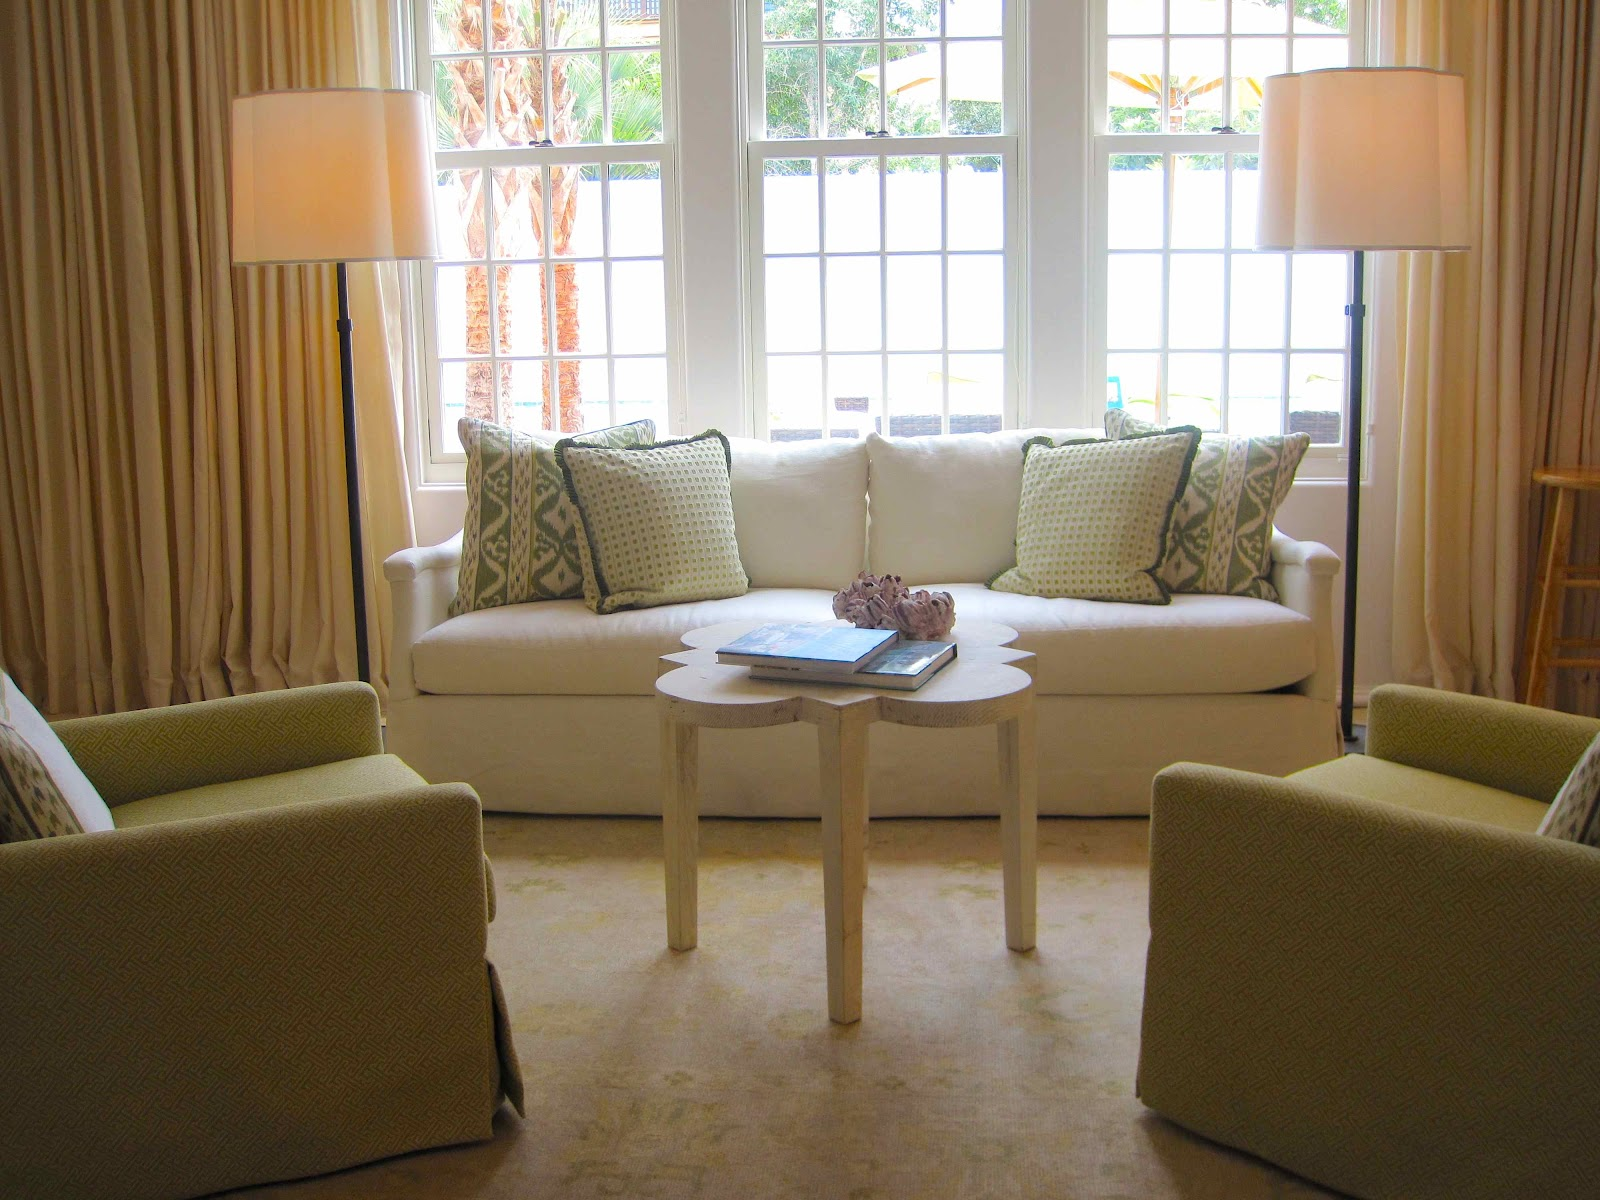 Decor Scoop: Tour of Coastal Living's 2012 Ultimate Beach House